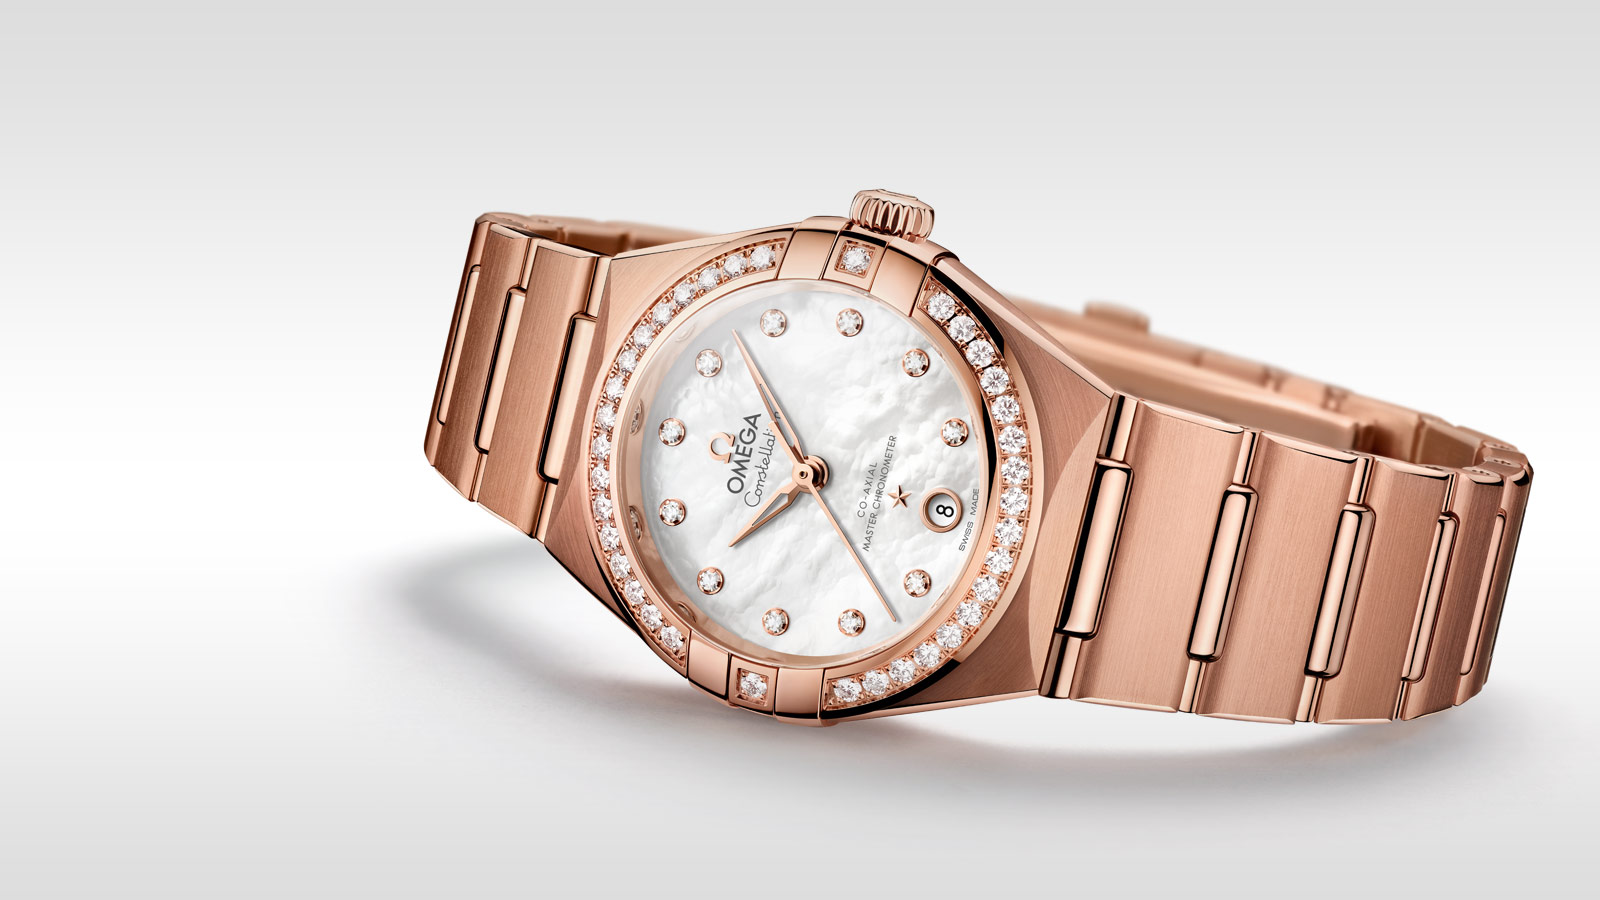 Constellation Constellation Constellation OMEGA Co‑Axial Master Chronometer 29 mm - 131.55.29.20.55.001 - Visualizzare 1